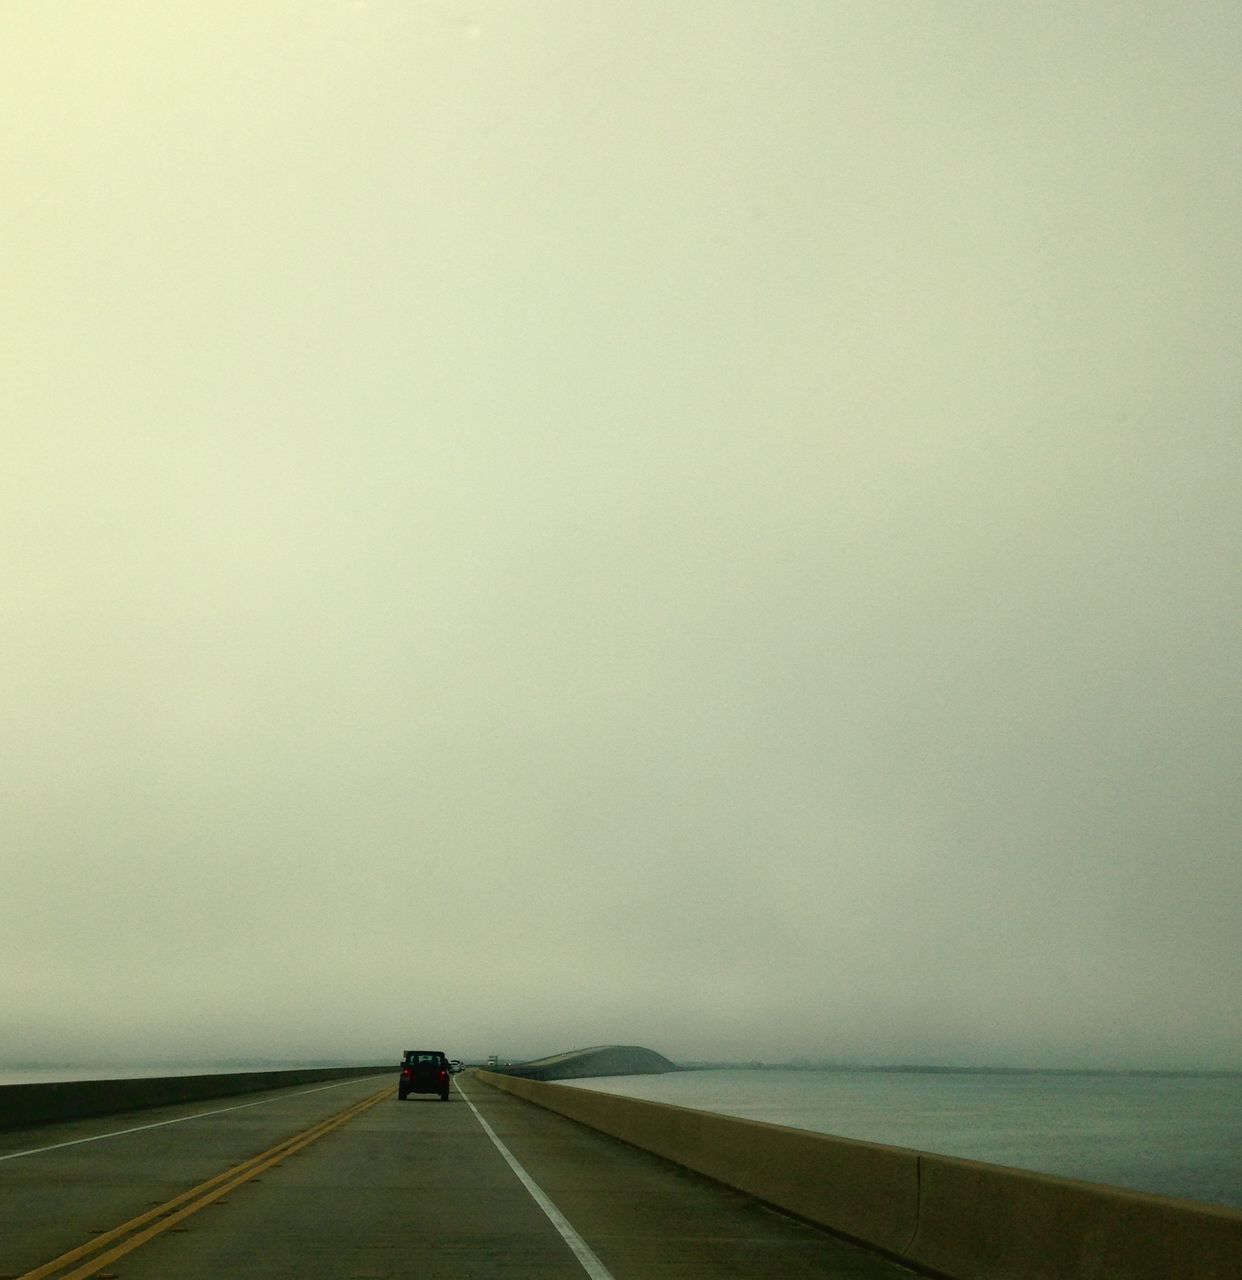 transportation, road, the way forward, car, land vehicle, mode of transport, day, fog, no people, outdoors, nature, sky